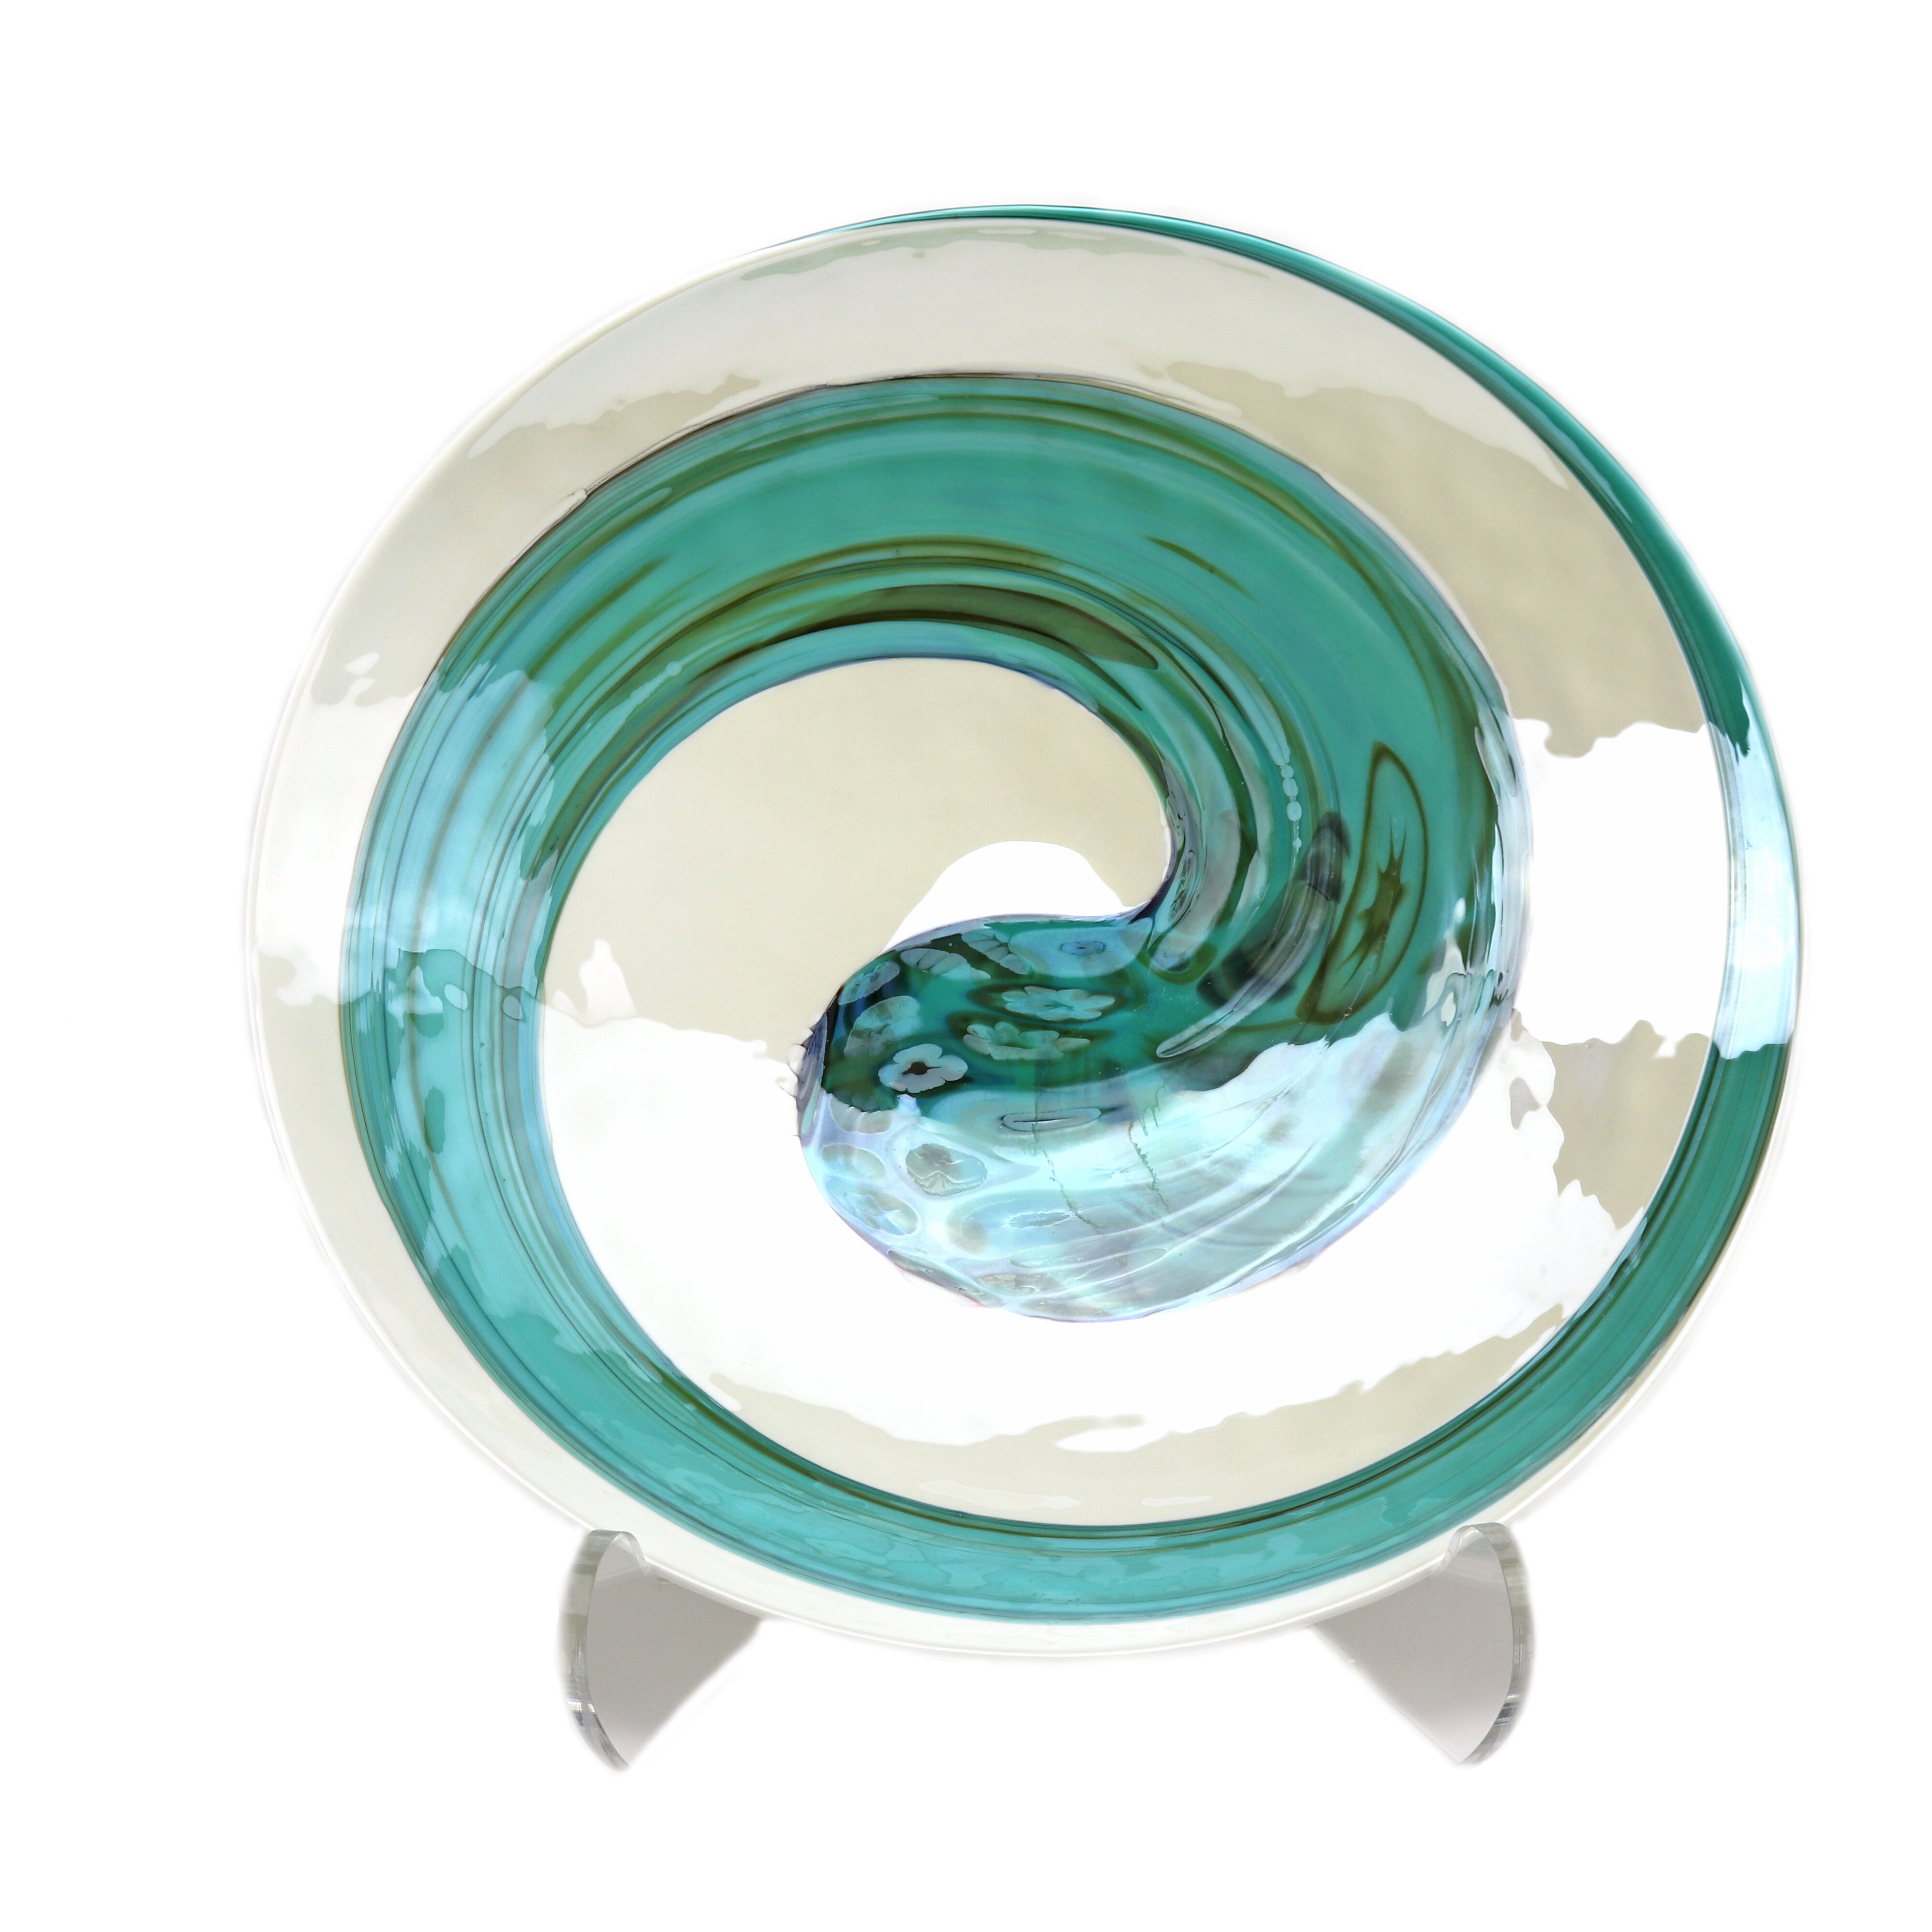 Rosecliff Heights Dede Glass Oval Beachy Decorative Plate In Ivory Teal Green Wayfair